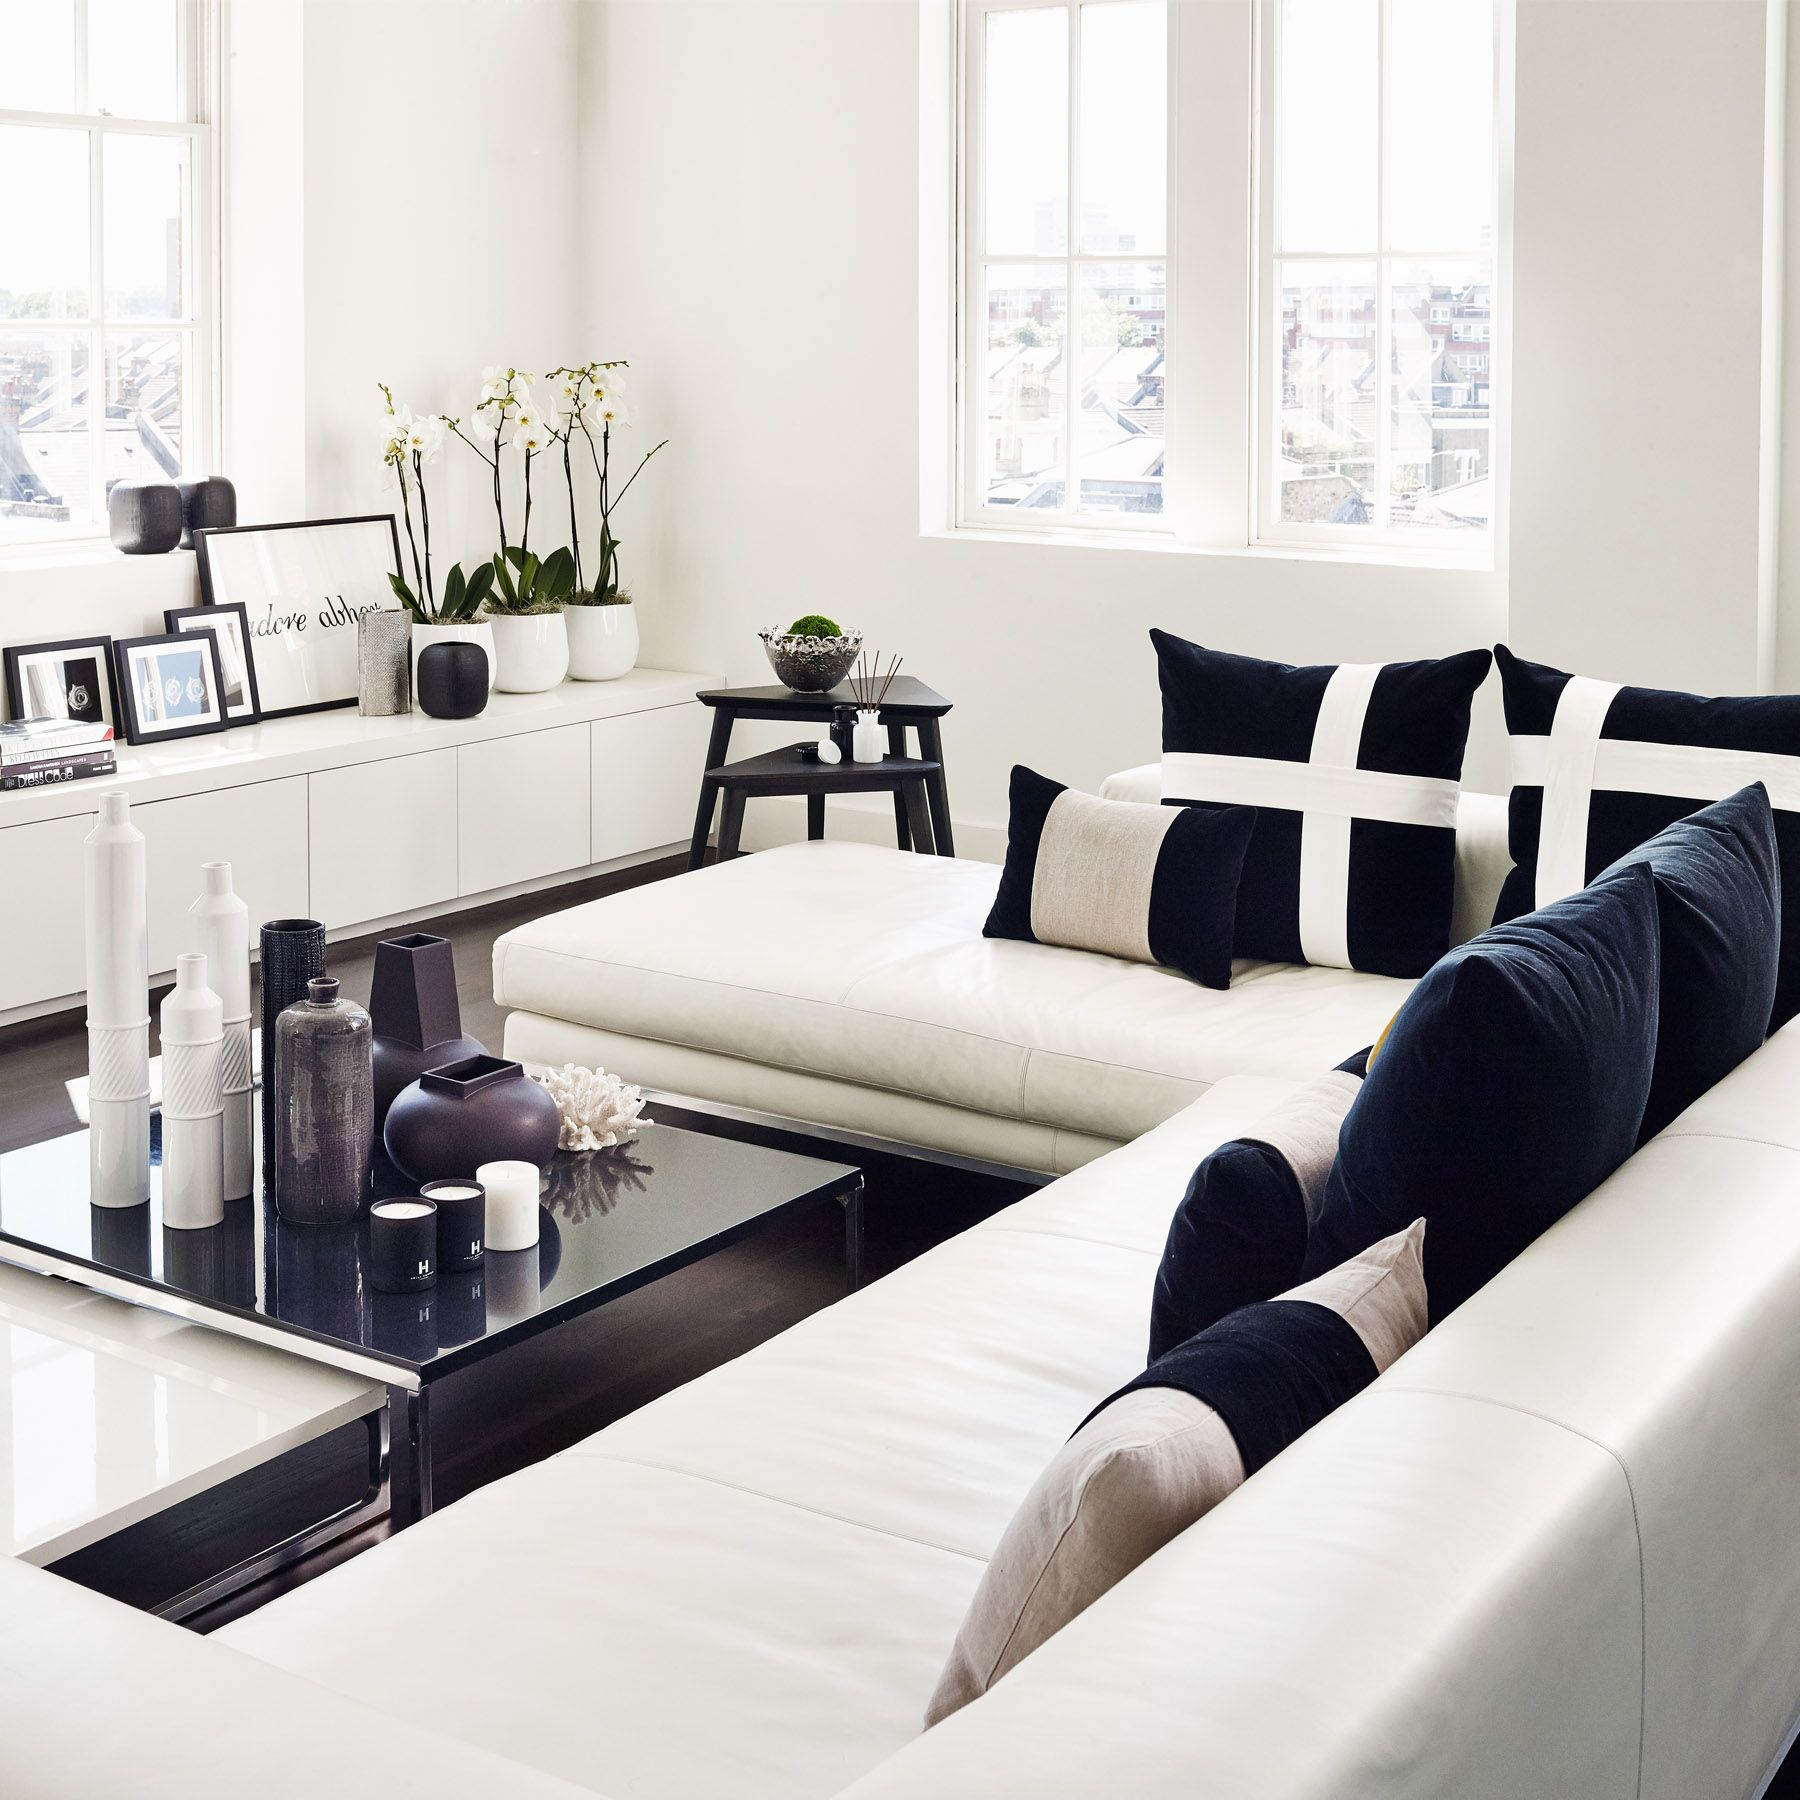 Rose series picture set of three kelly hoppen london for Decoracion hogar blanco